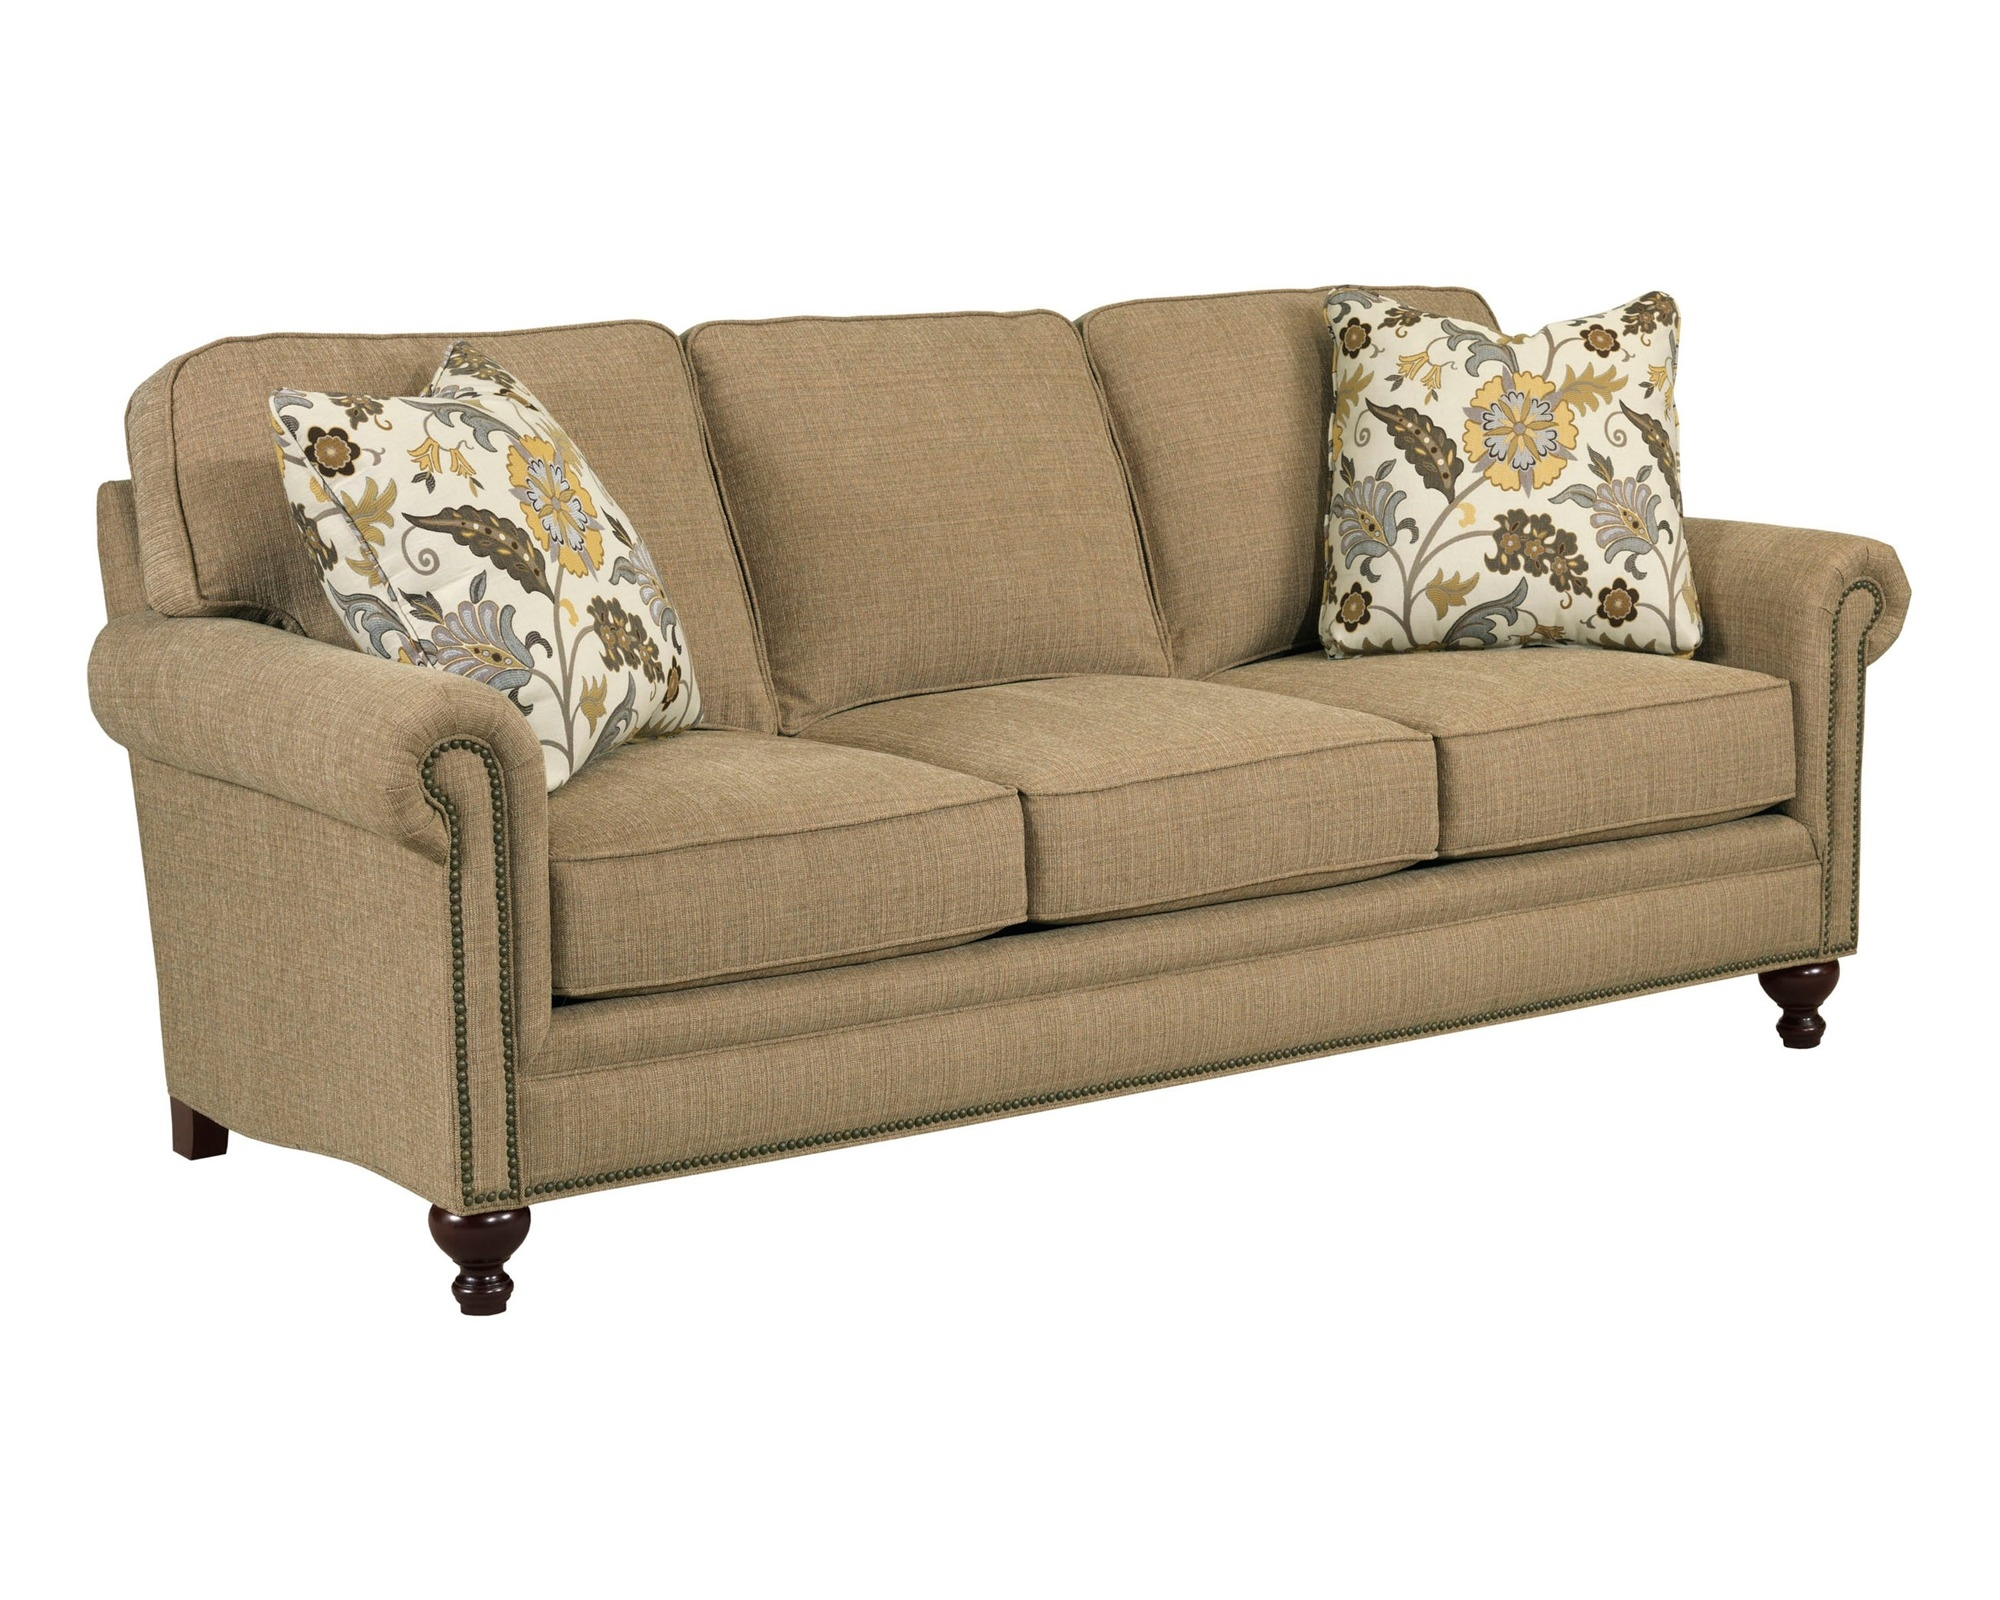 15 photos broyhill sectional sofa sofa ideas for Broyhill sectional sofa with chaise